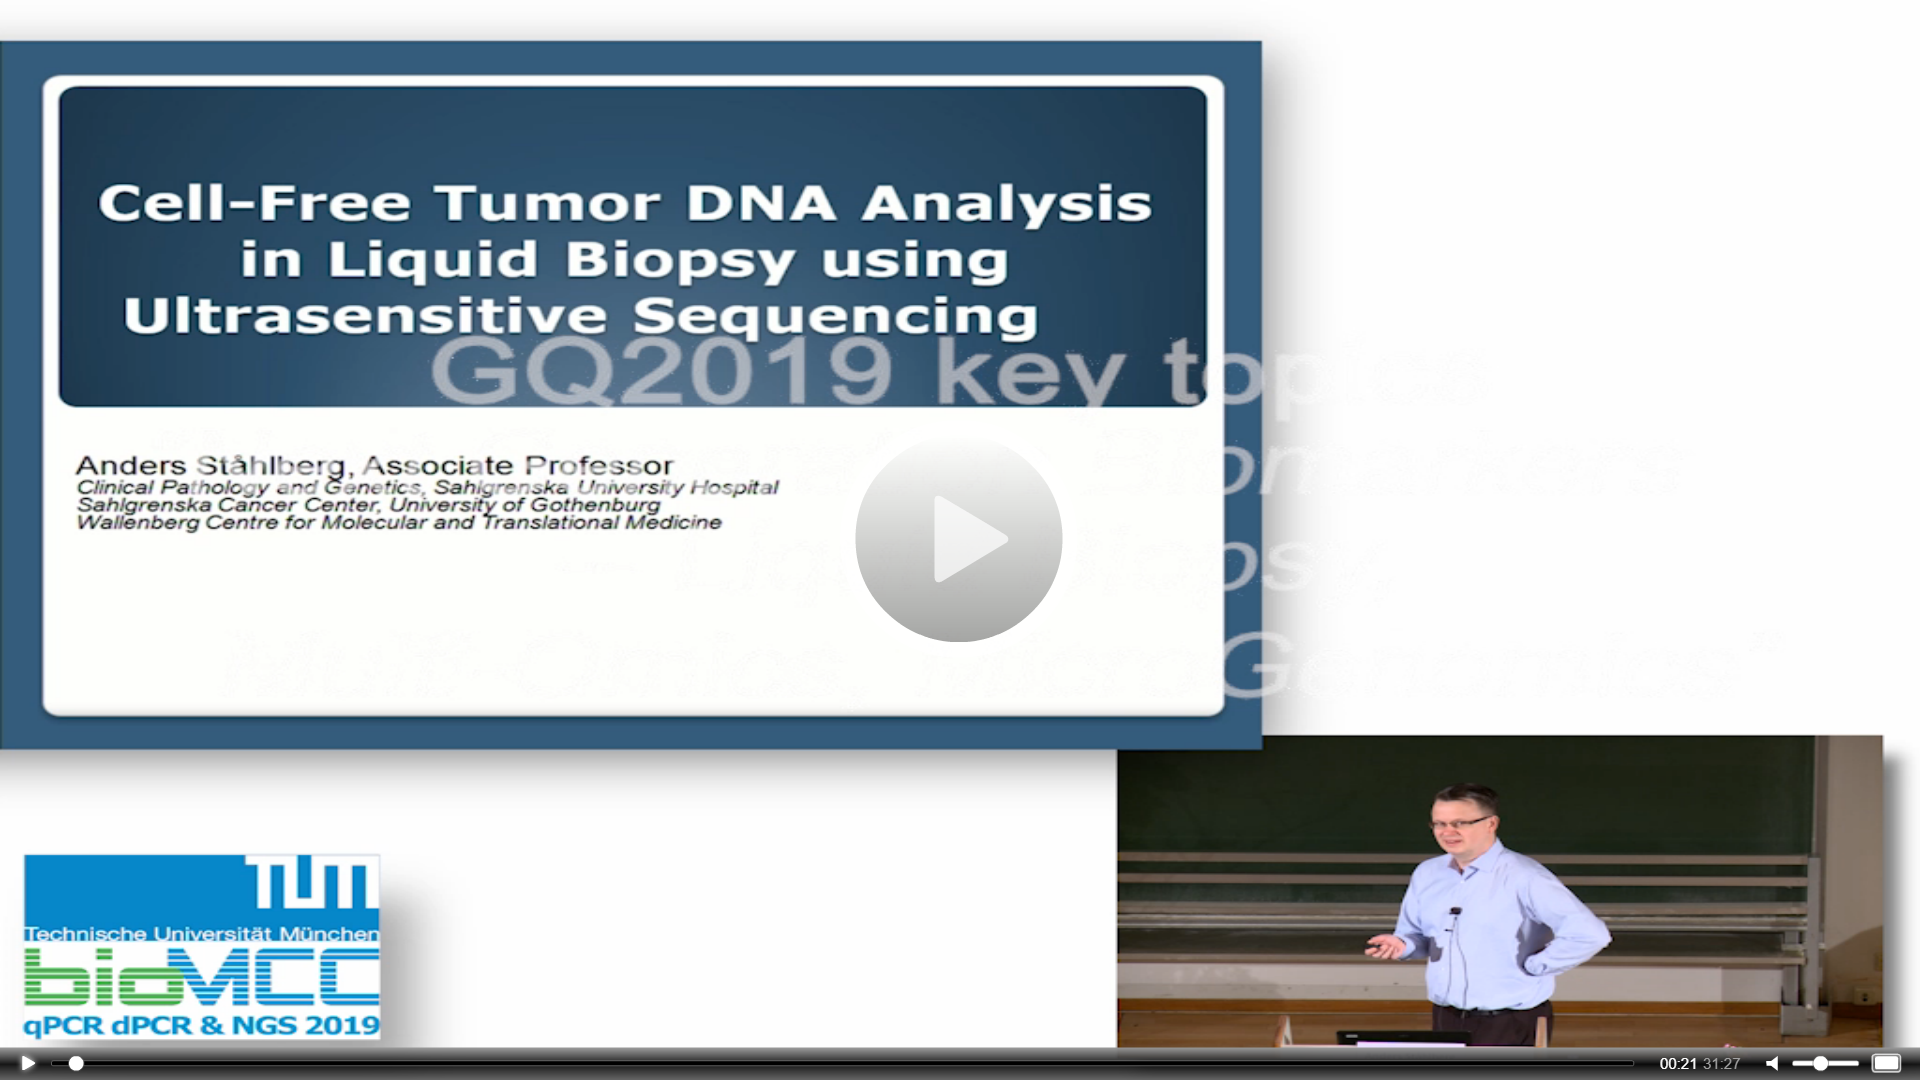 Cell-Free Tumor DNA Analysis In Liquid Biopsy Using Ultrasensitive Sequencing